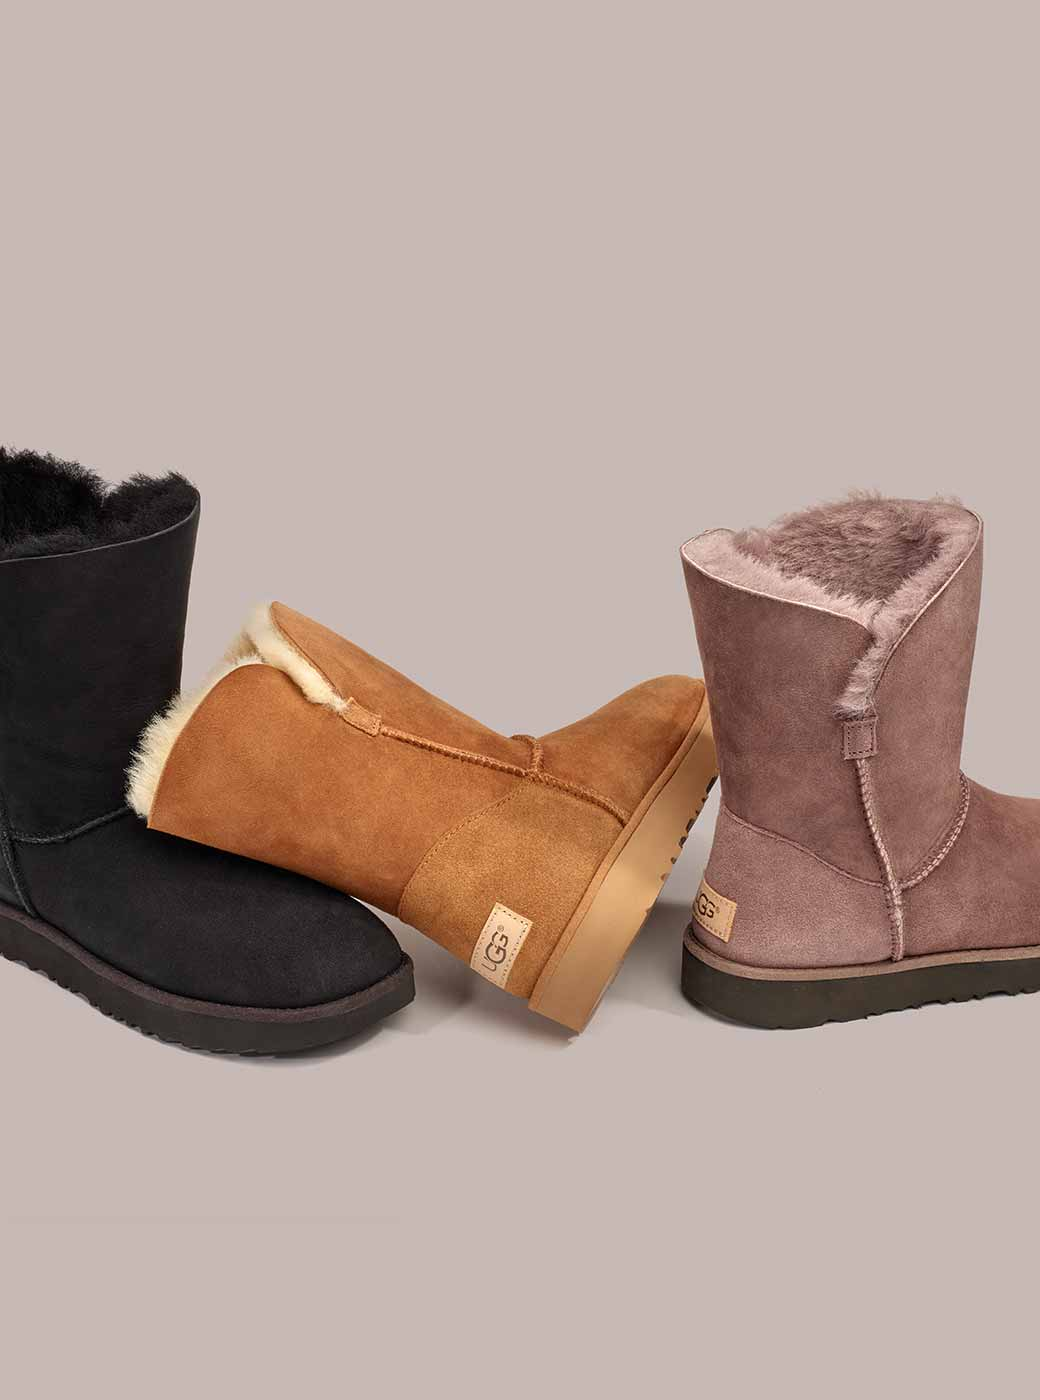 Ugg closet sale up to 50% off